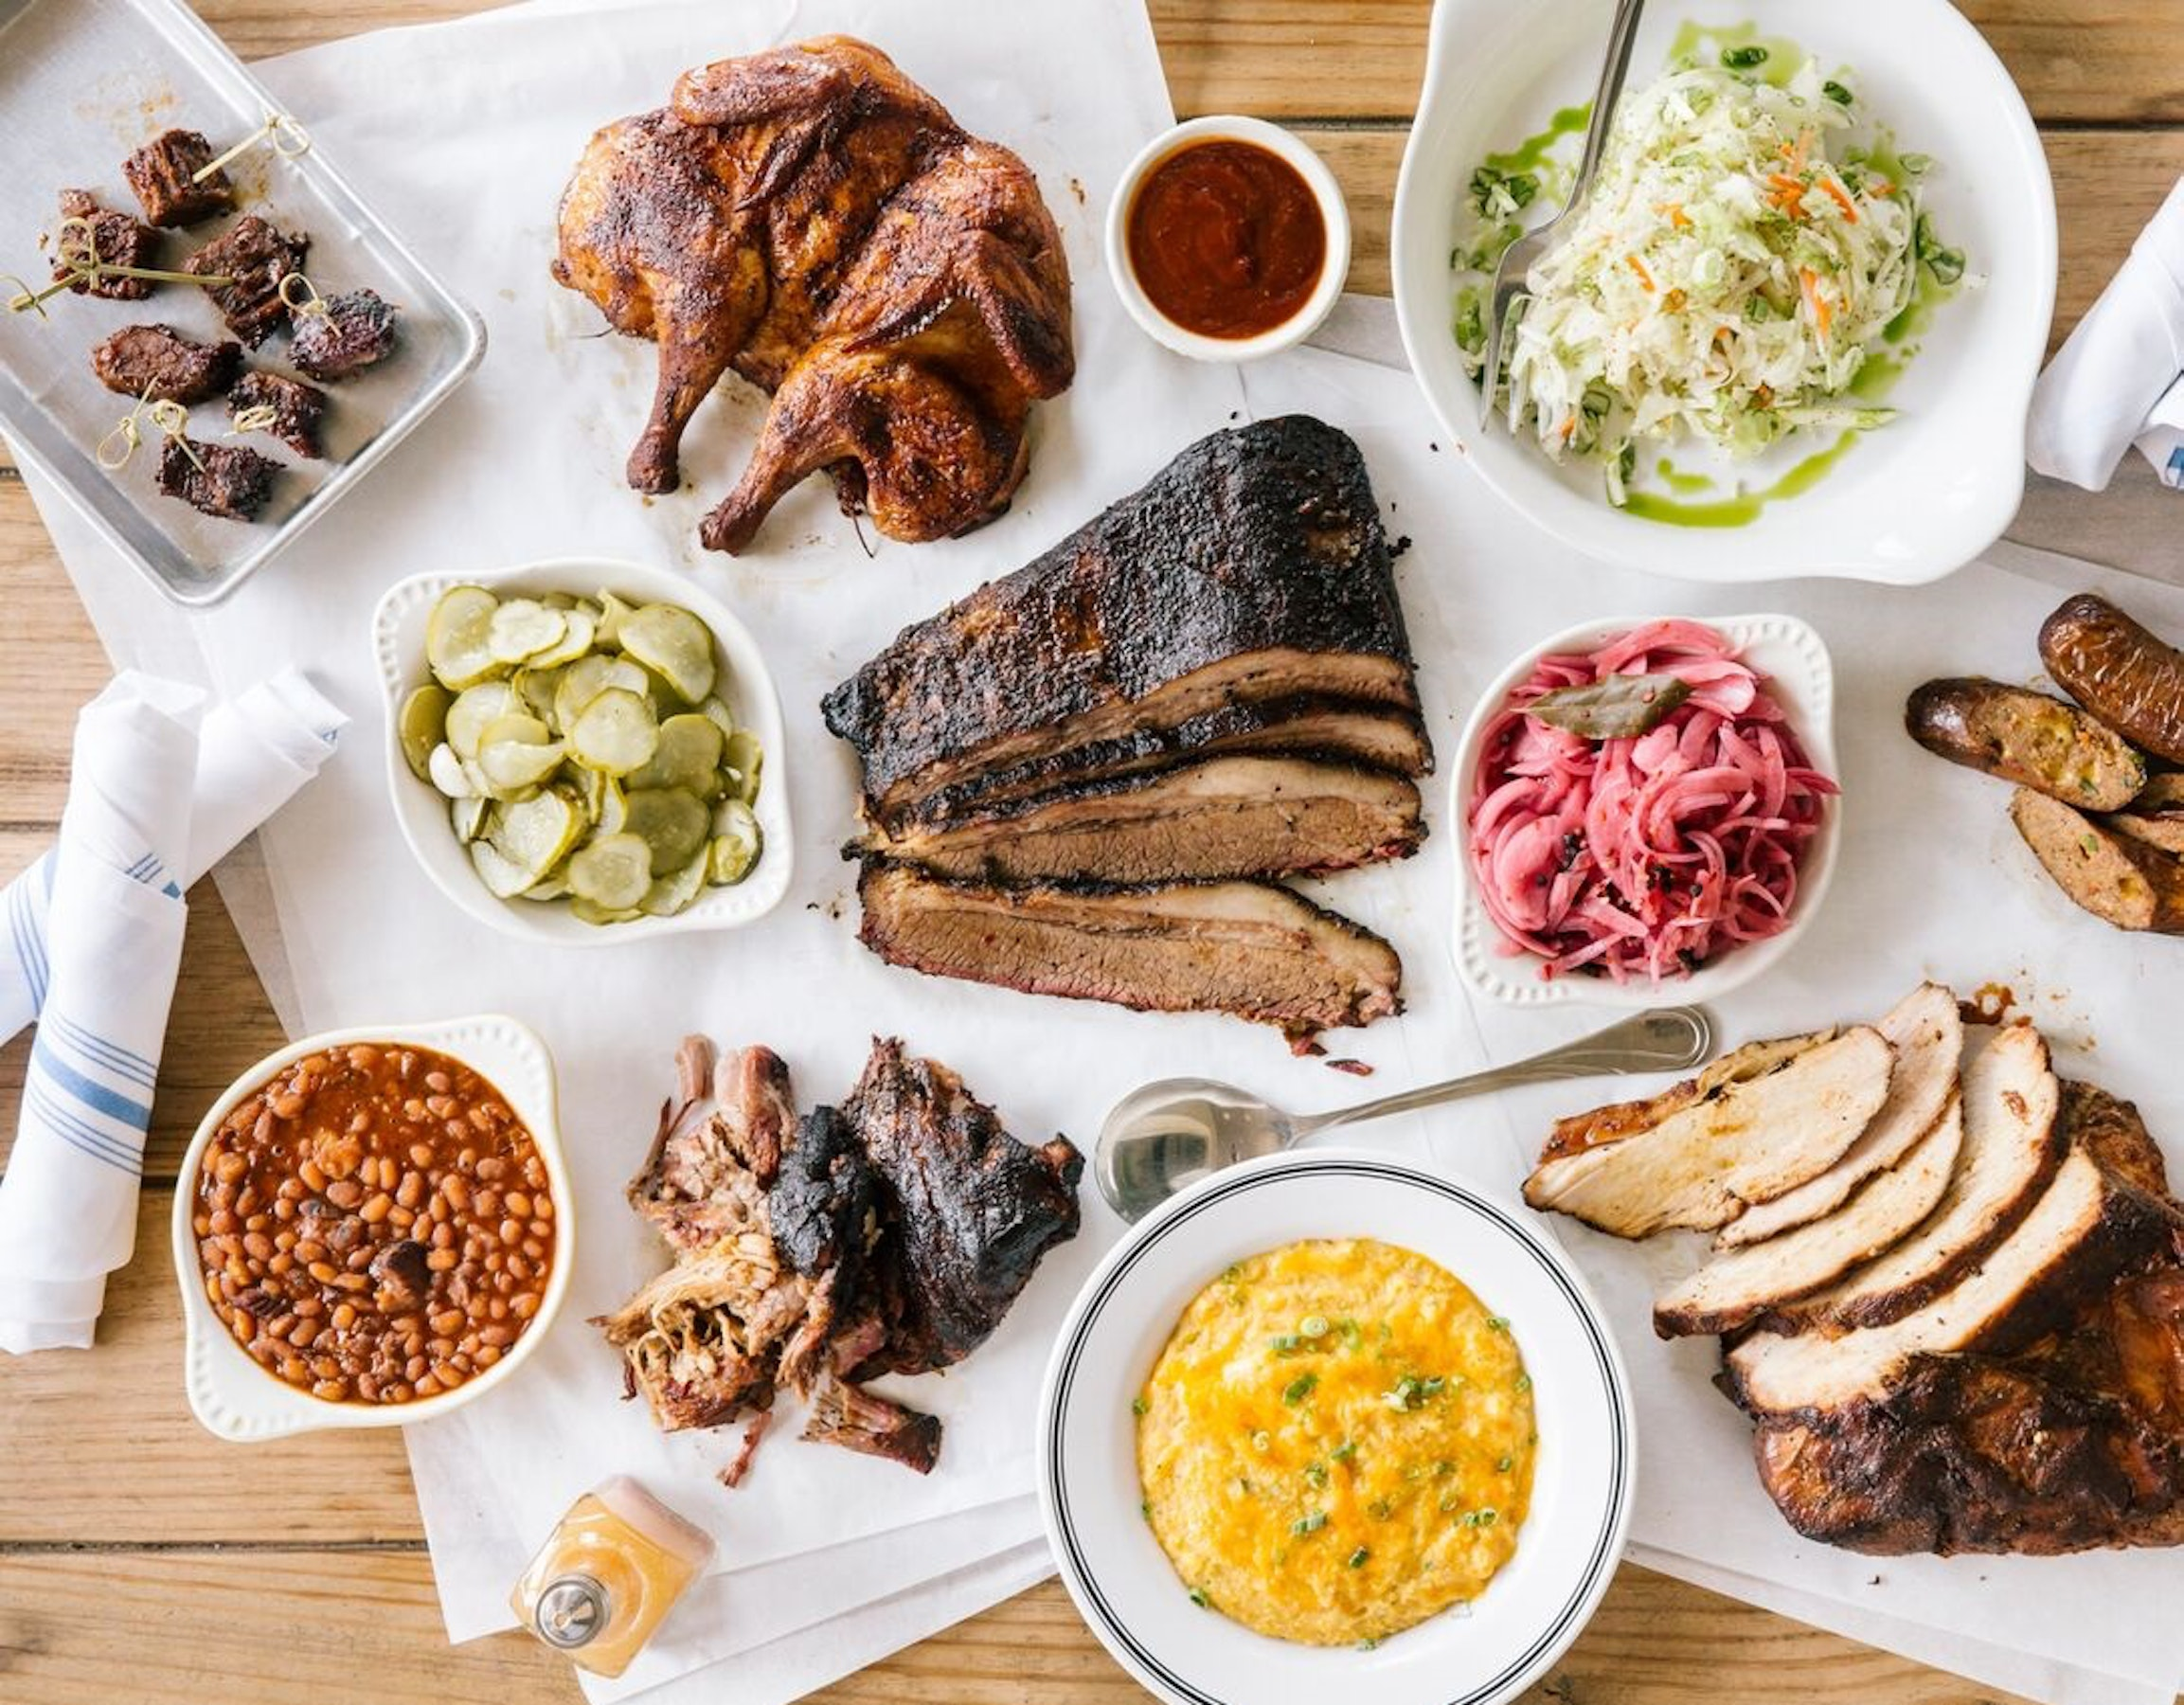 18th & Vine BBQ in Beyond Dallas